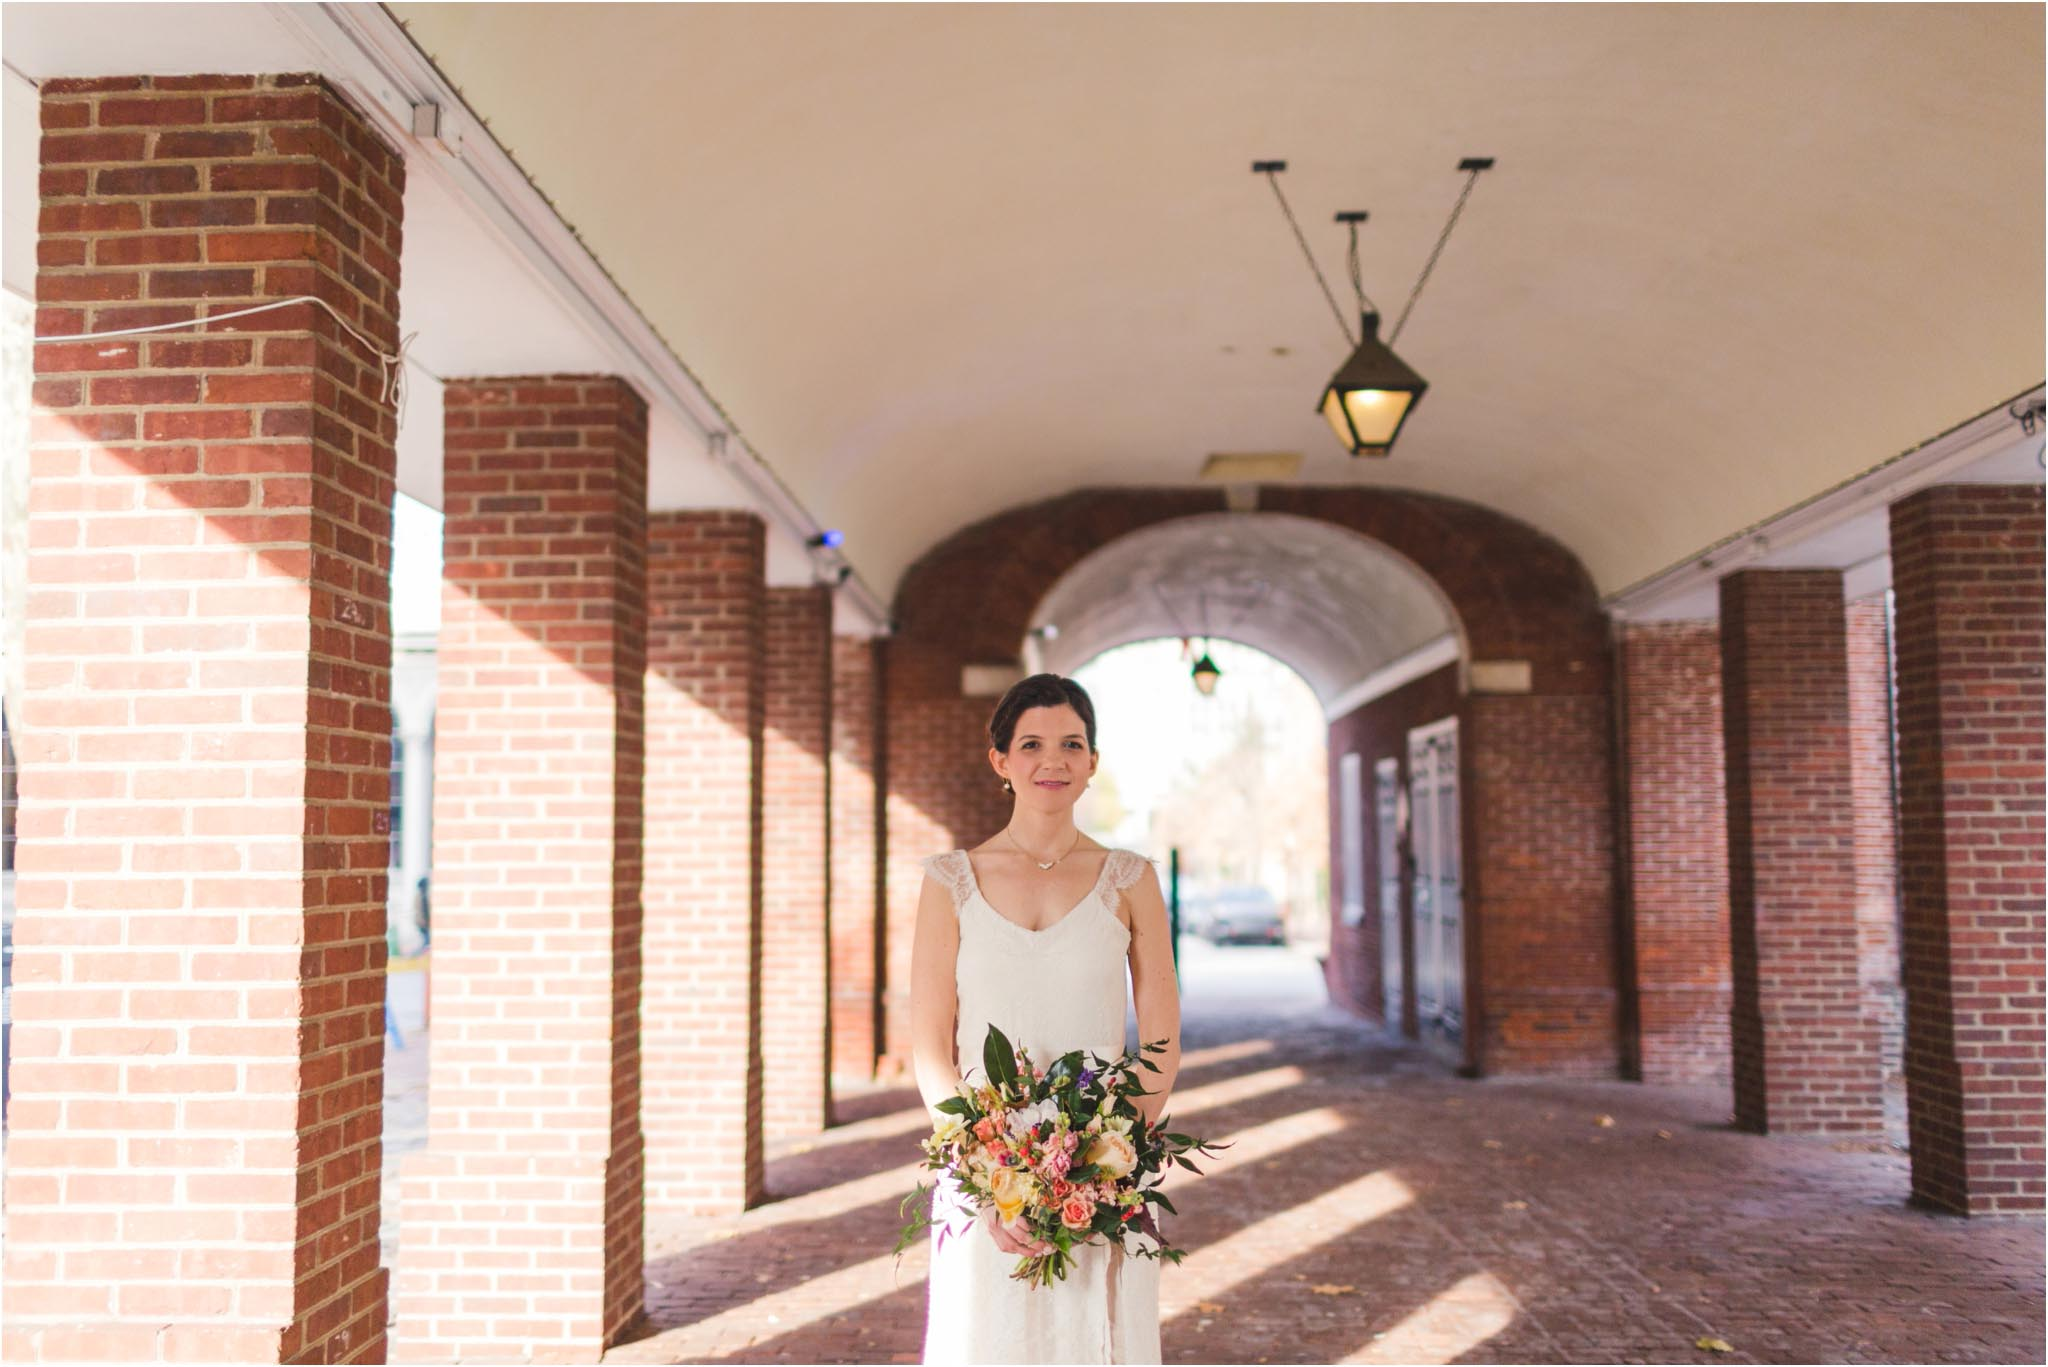 Headhouse Square, Philadelphia, wedding